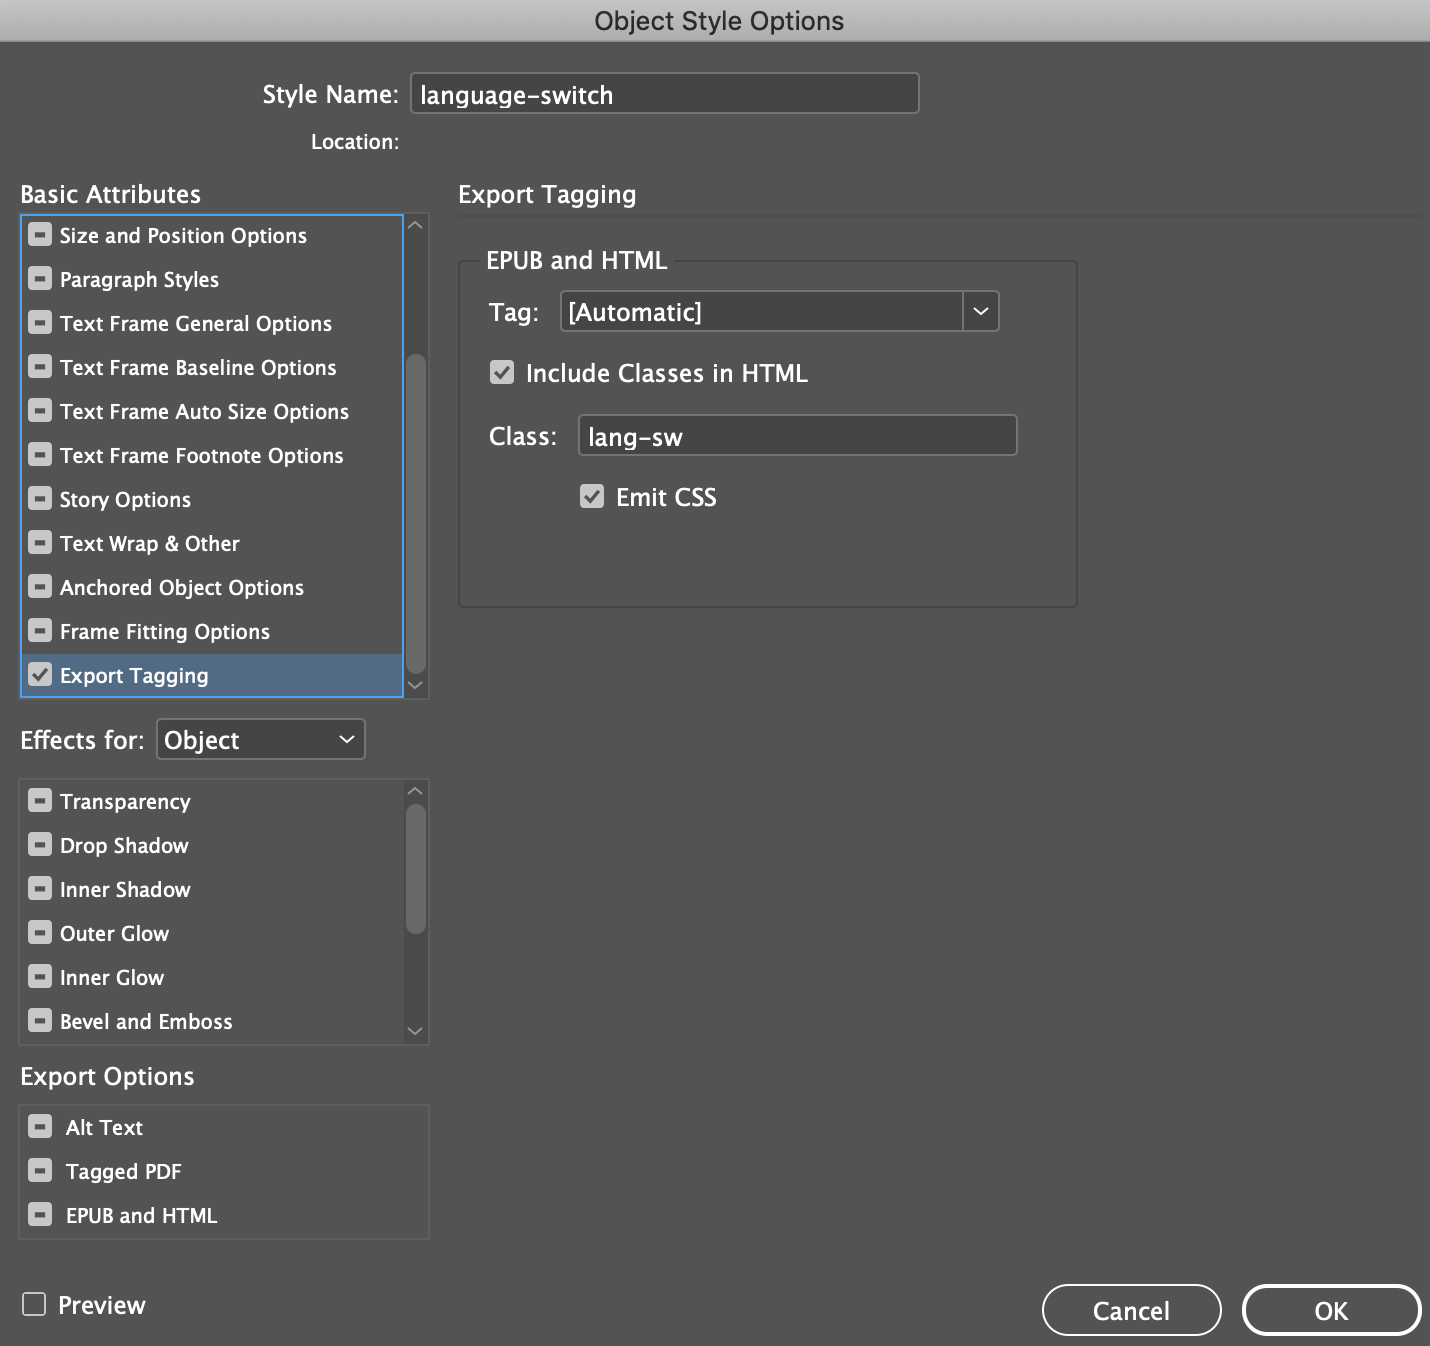 Object Style settings with export tagging